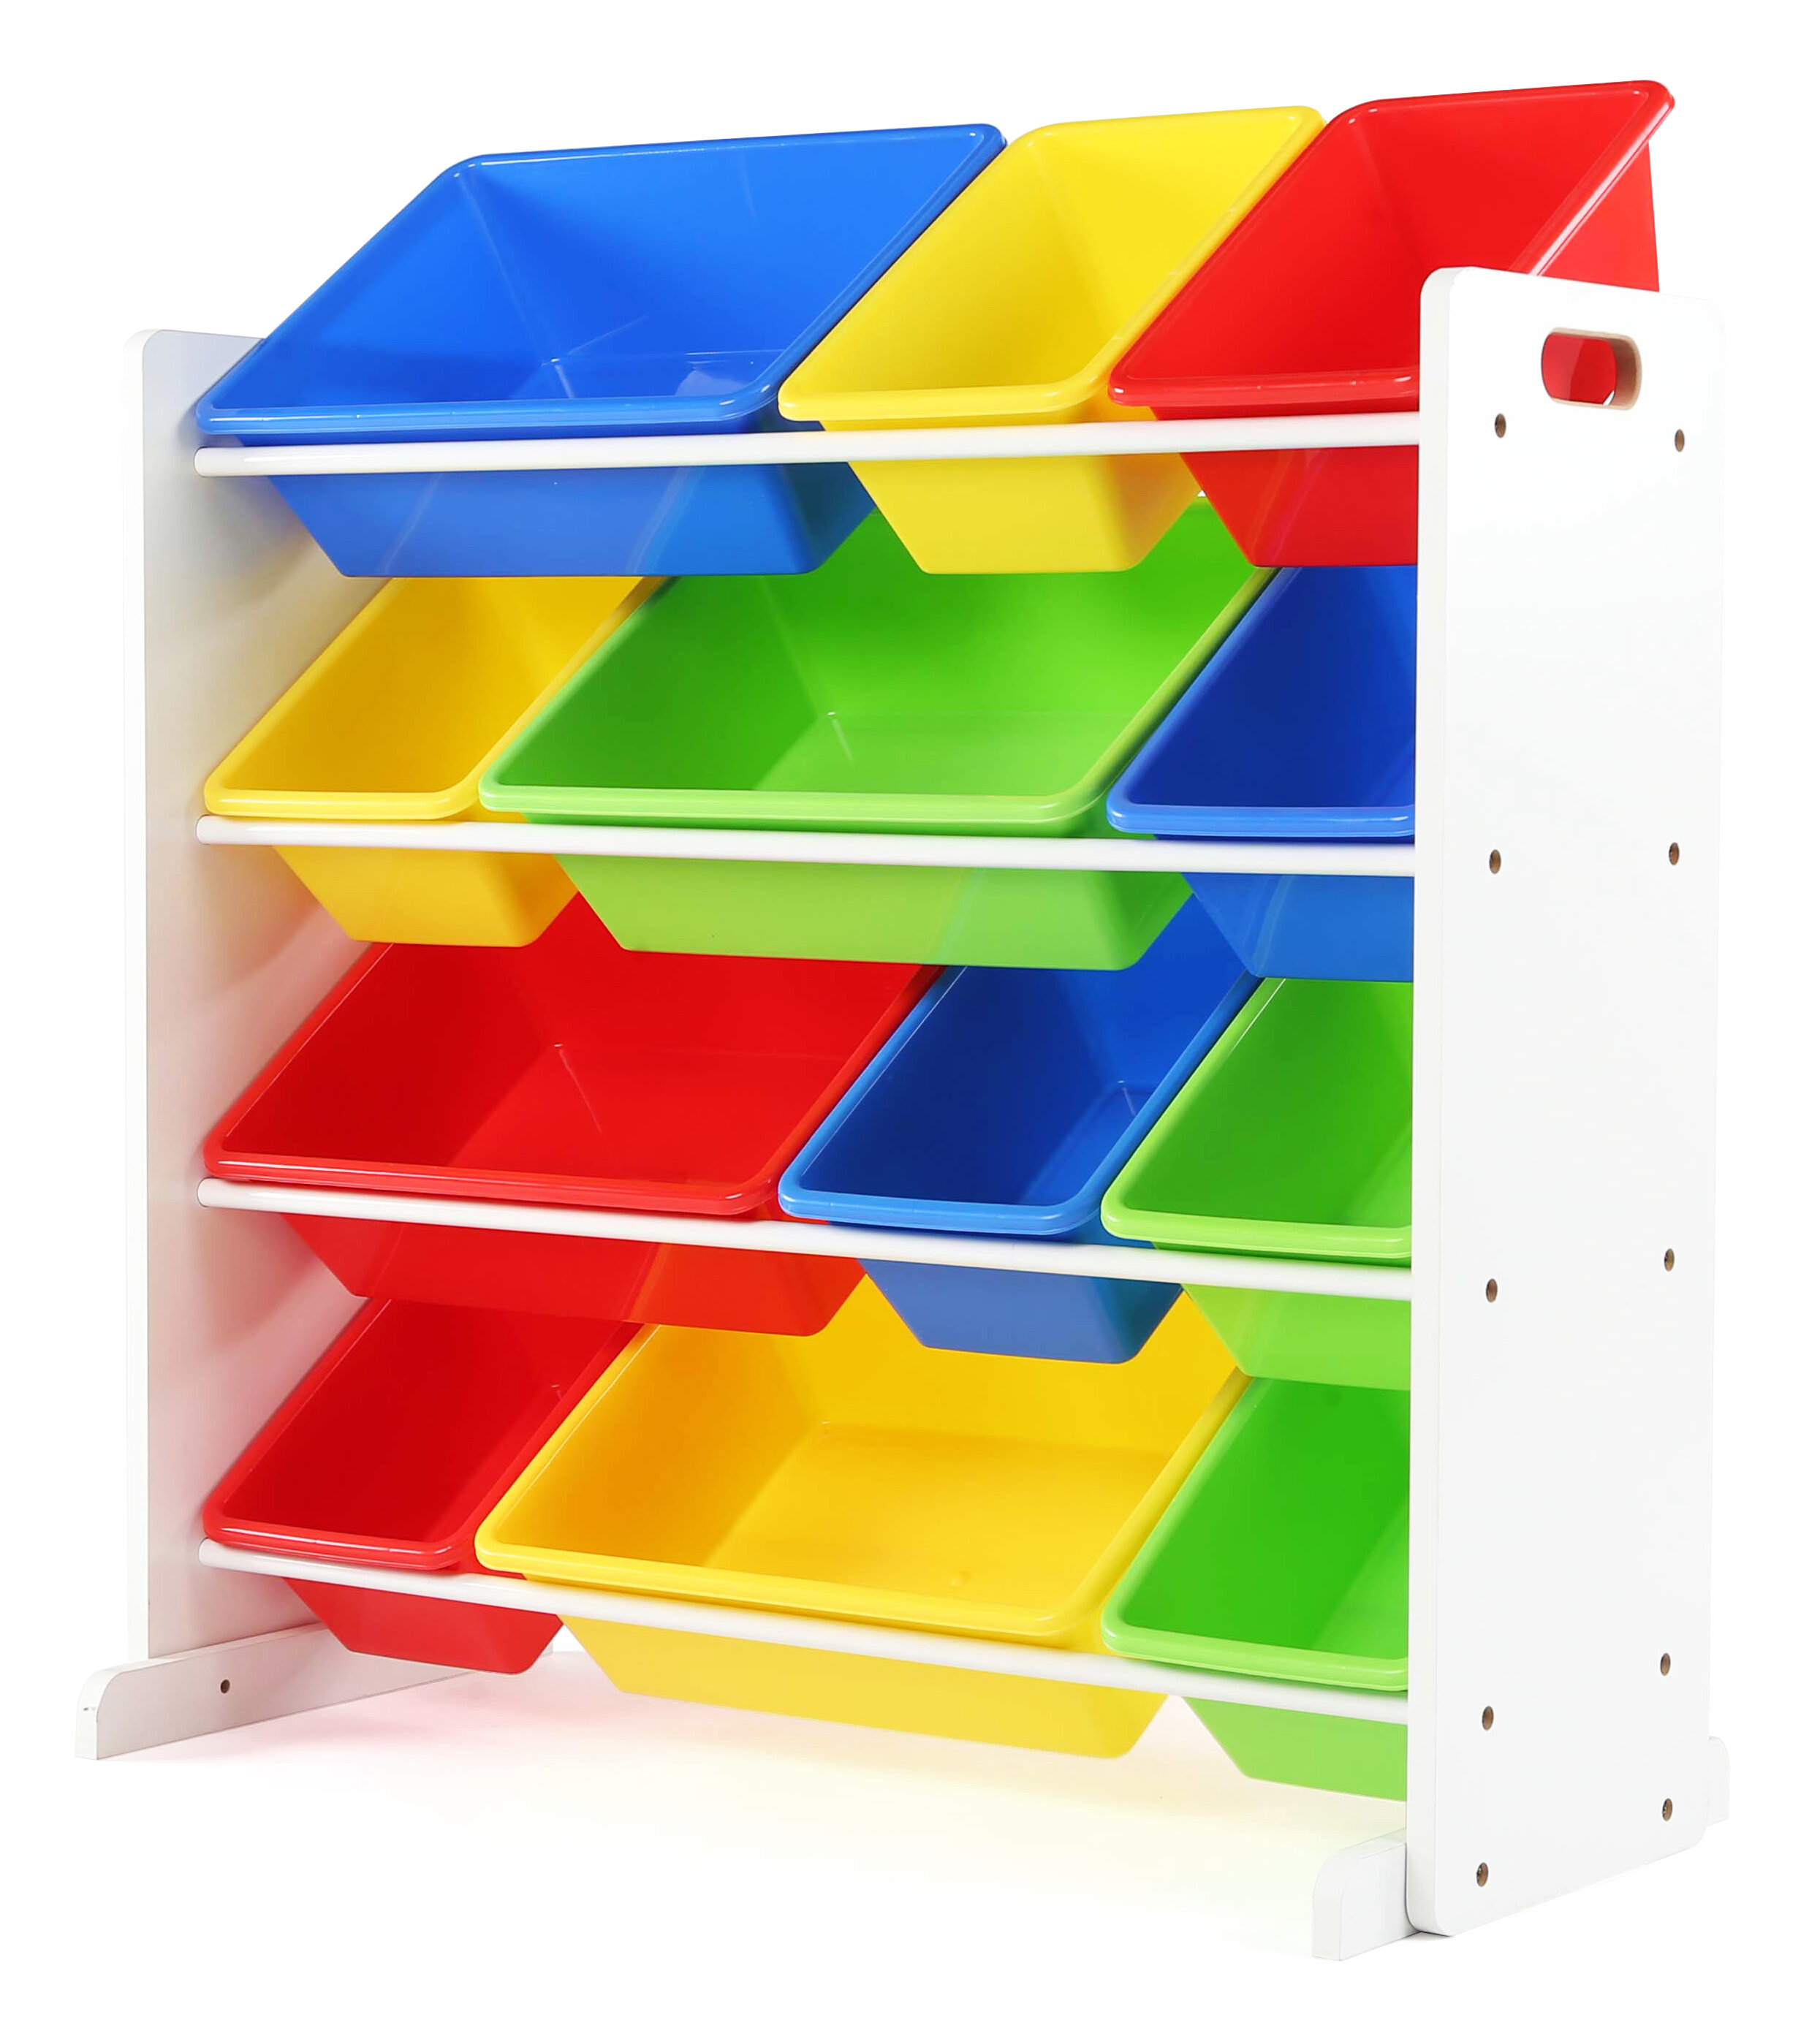 Tot Tutors Kid Toy Storage Organizer Reviews Wayfair